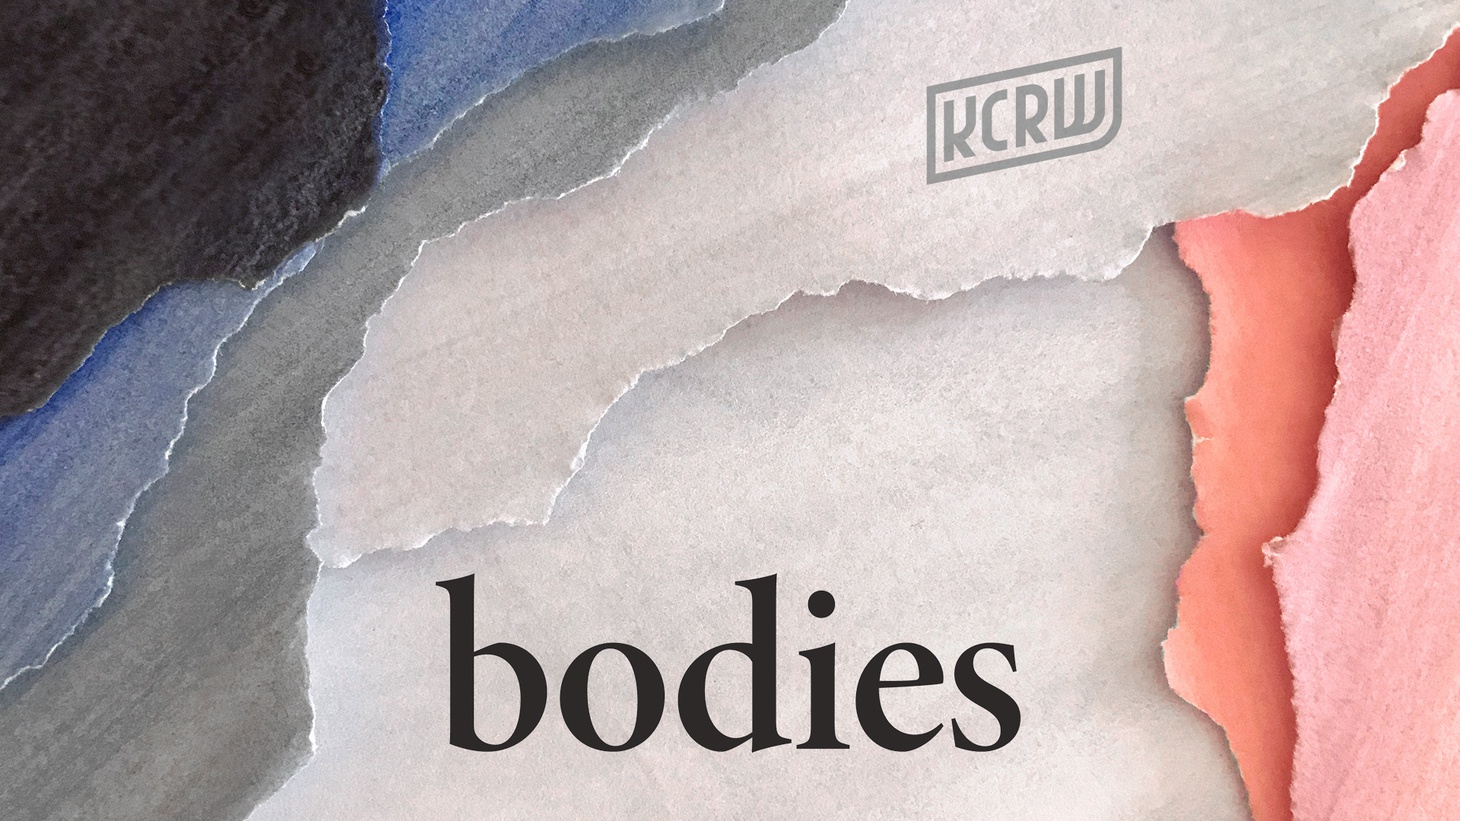 Season 2 of Bodies coming March 4, 2020.